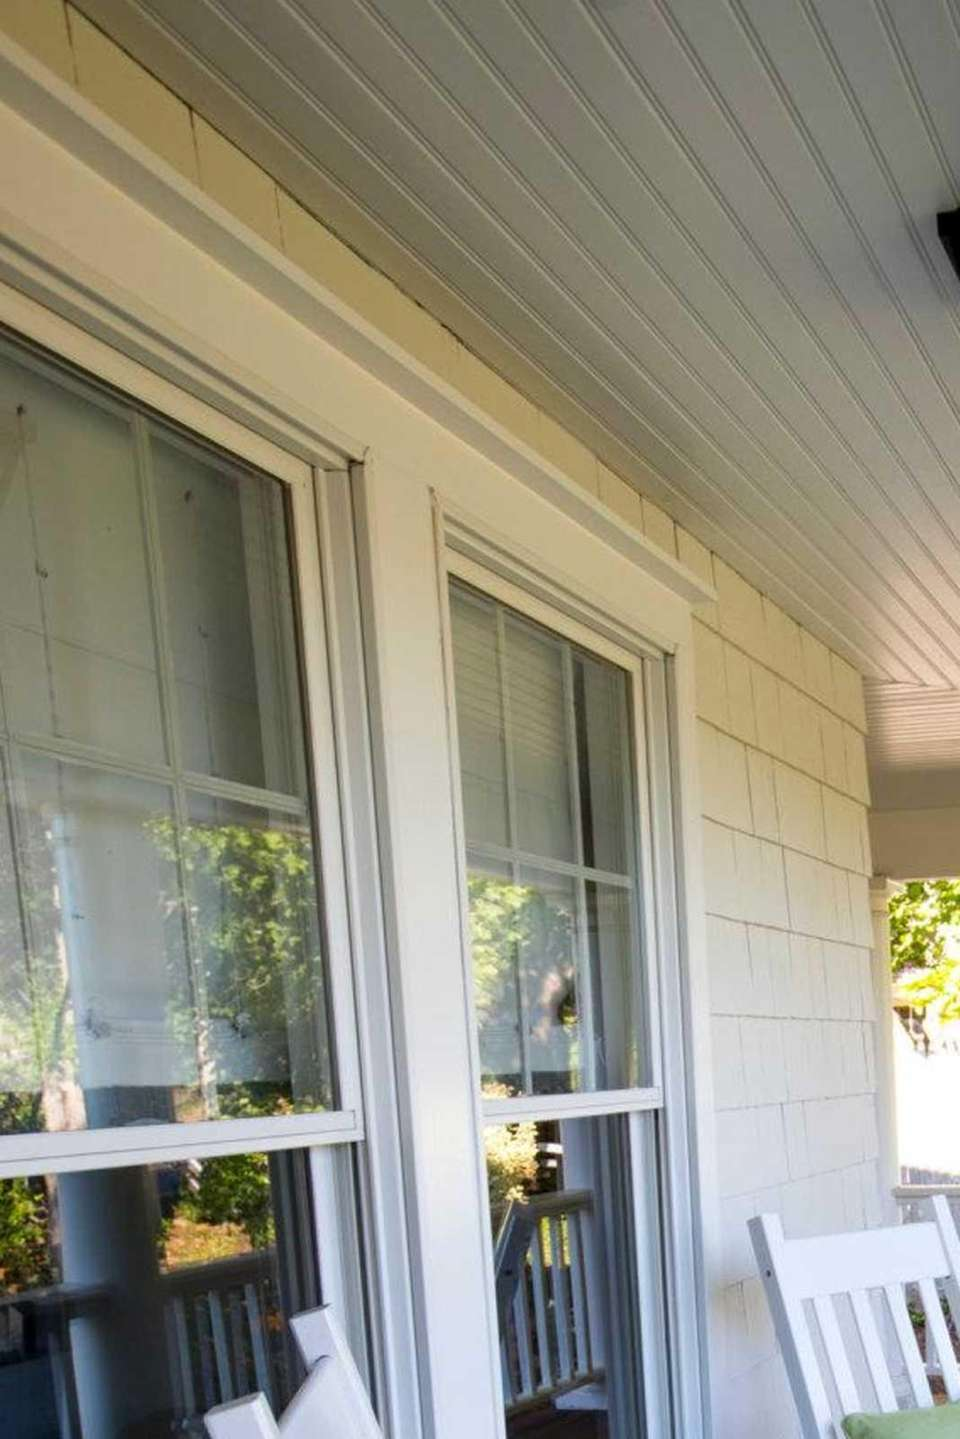 Rocking chairs on the wraparound porch at the